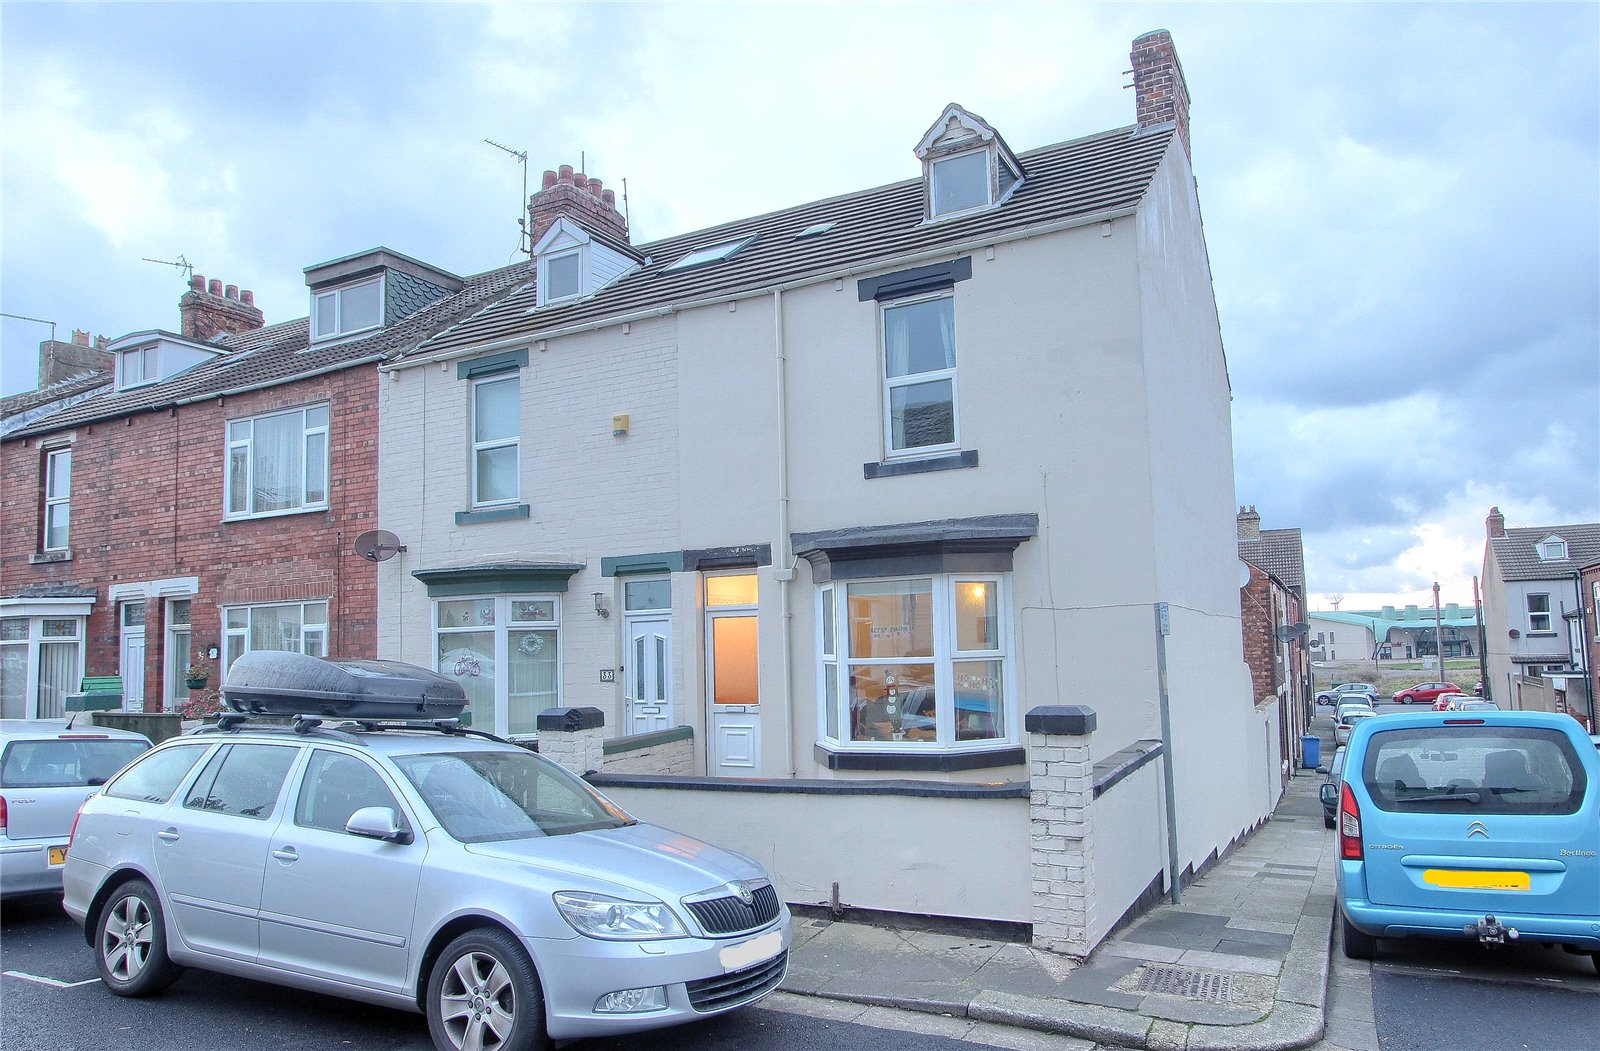 4 bed house for sale in High Street West, Redcar - Property Image 1